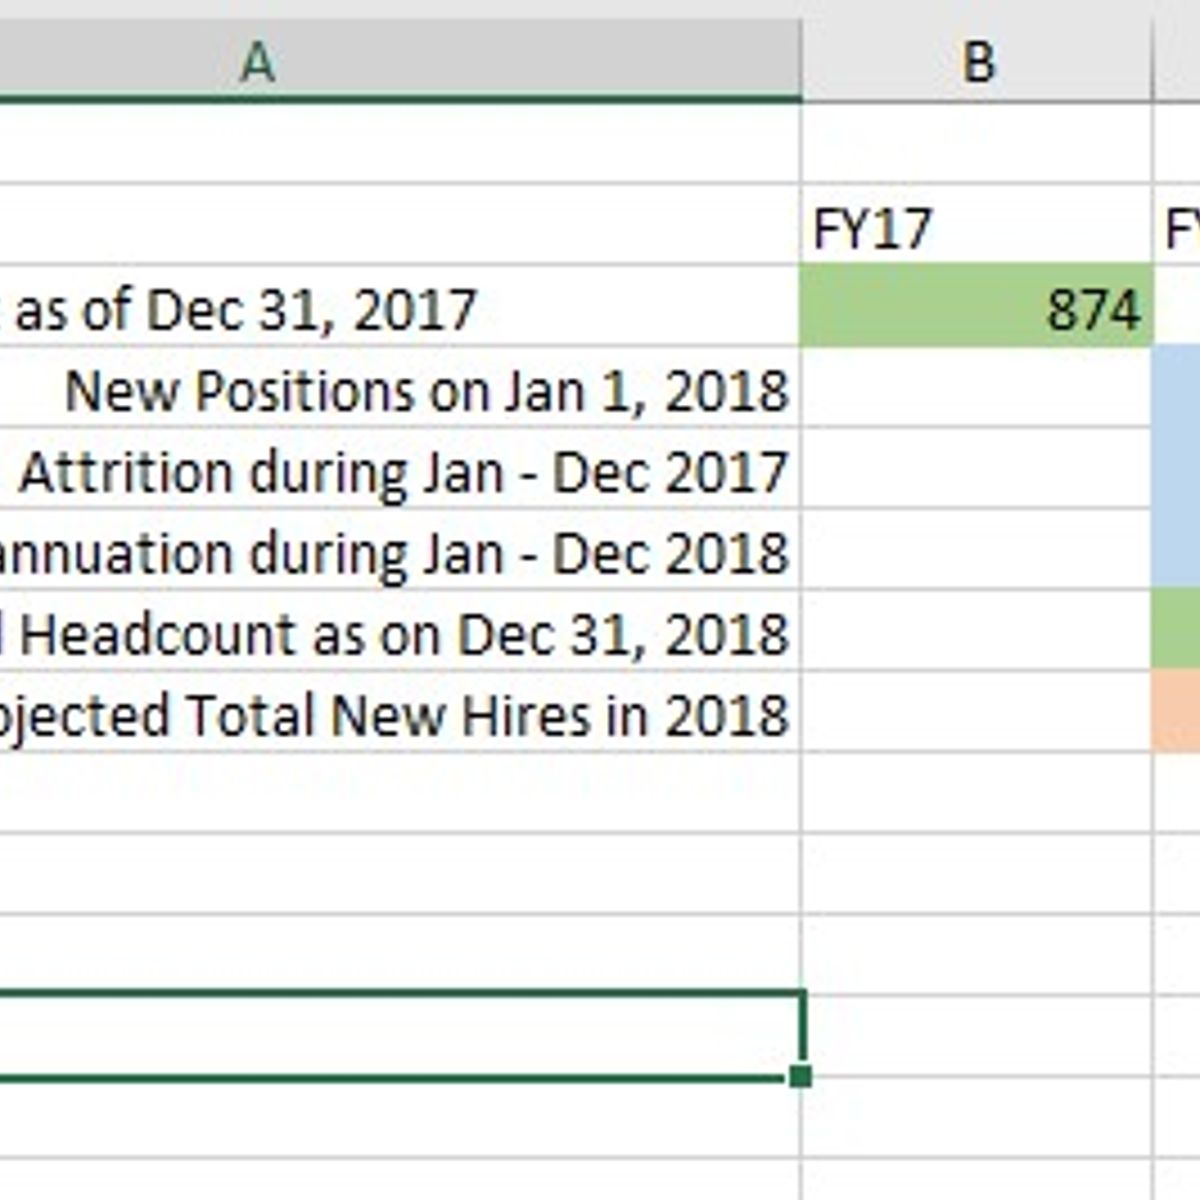 Building a Hiring Plan by Analyzing Past Data in Sheets